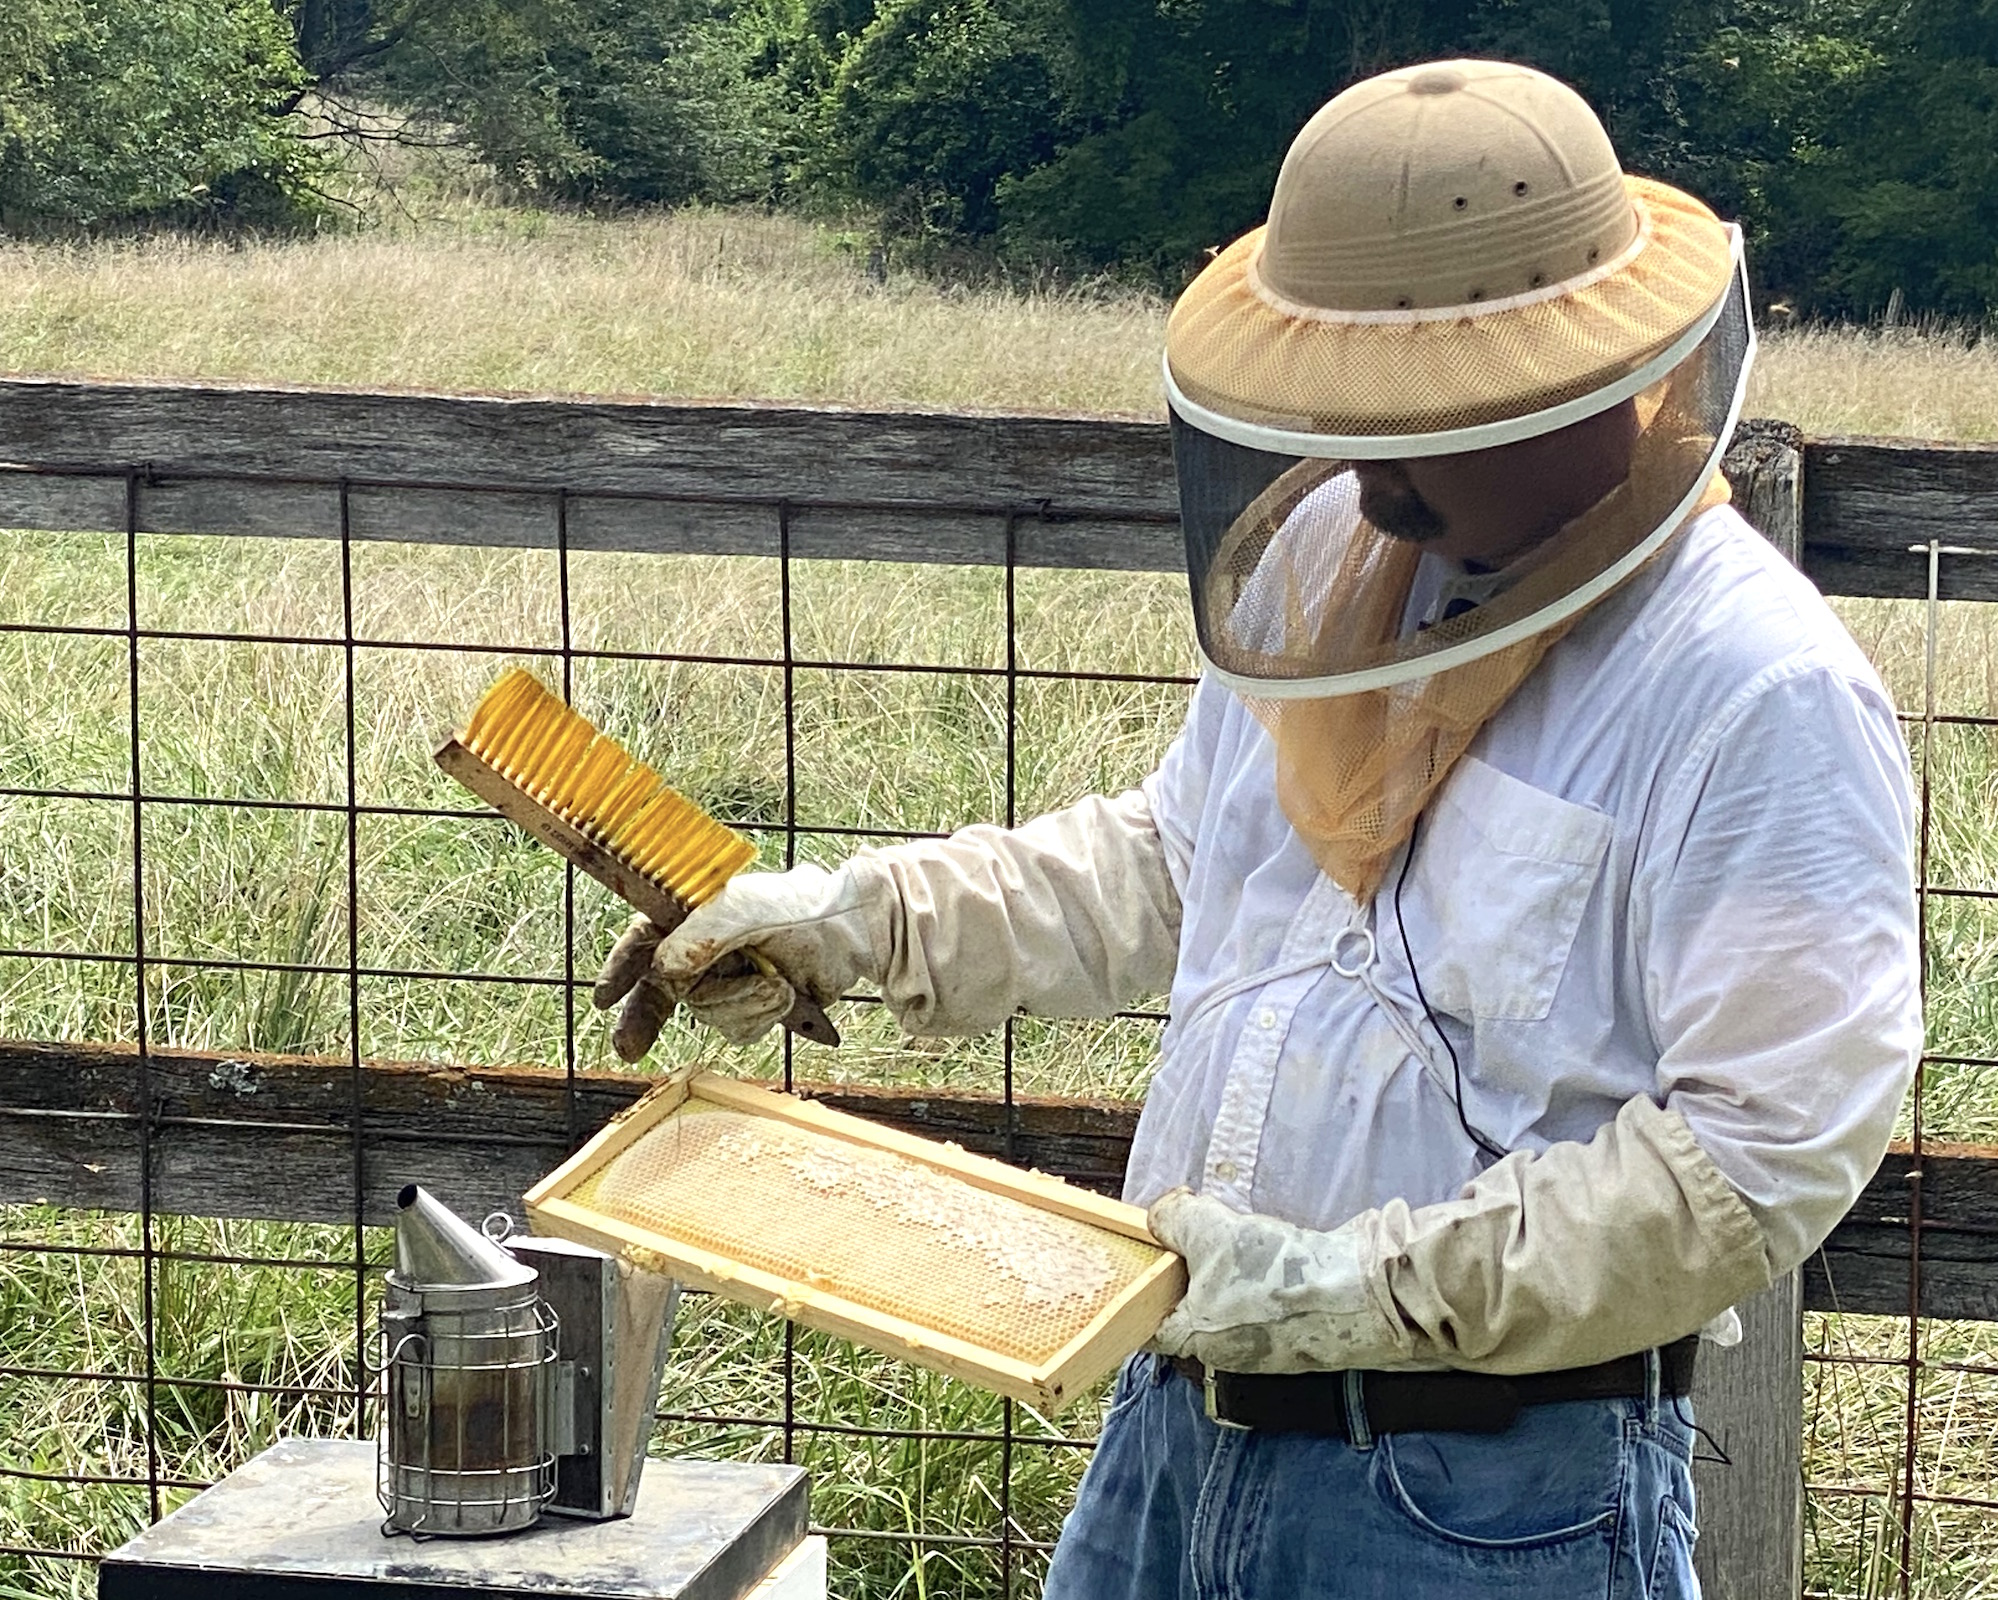 University of Missouri Extension agronomist and longtime beekeeper Travis Harper will teach the hands-on portion of the Heroes to Hives program in Missouri. The program helps veterans learn beekeeping. Photo by Tevin Uthlaut.